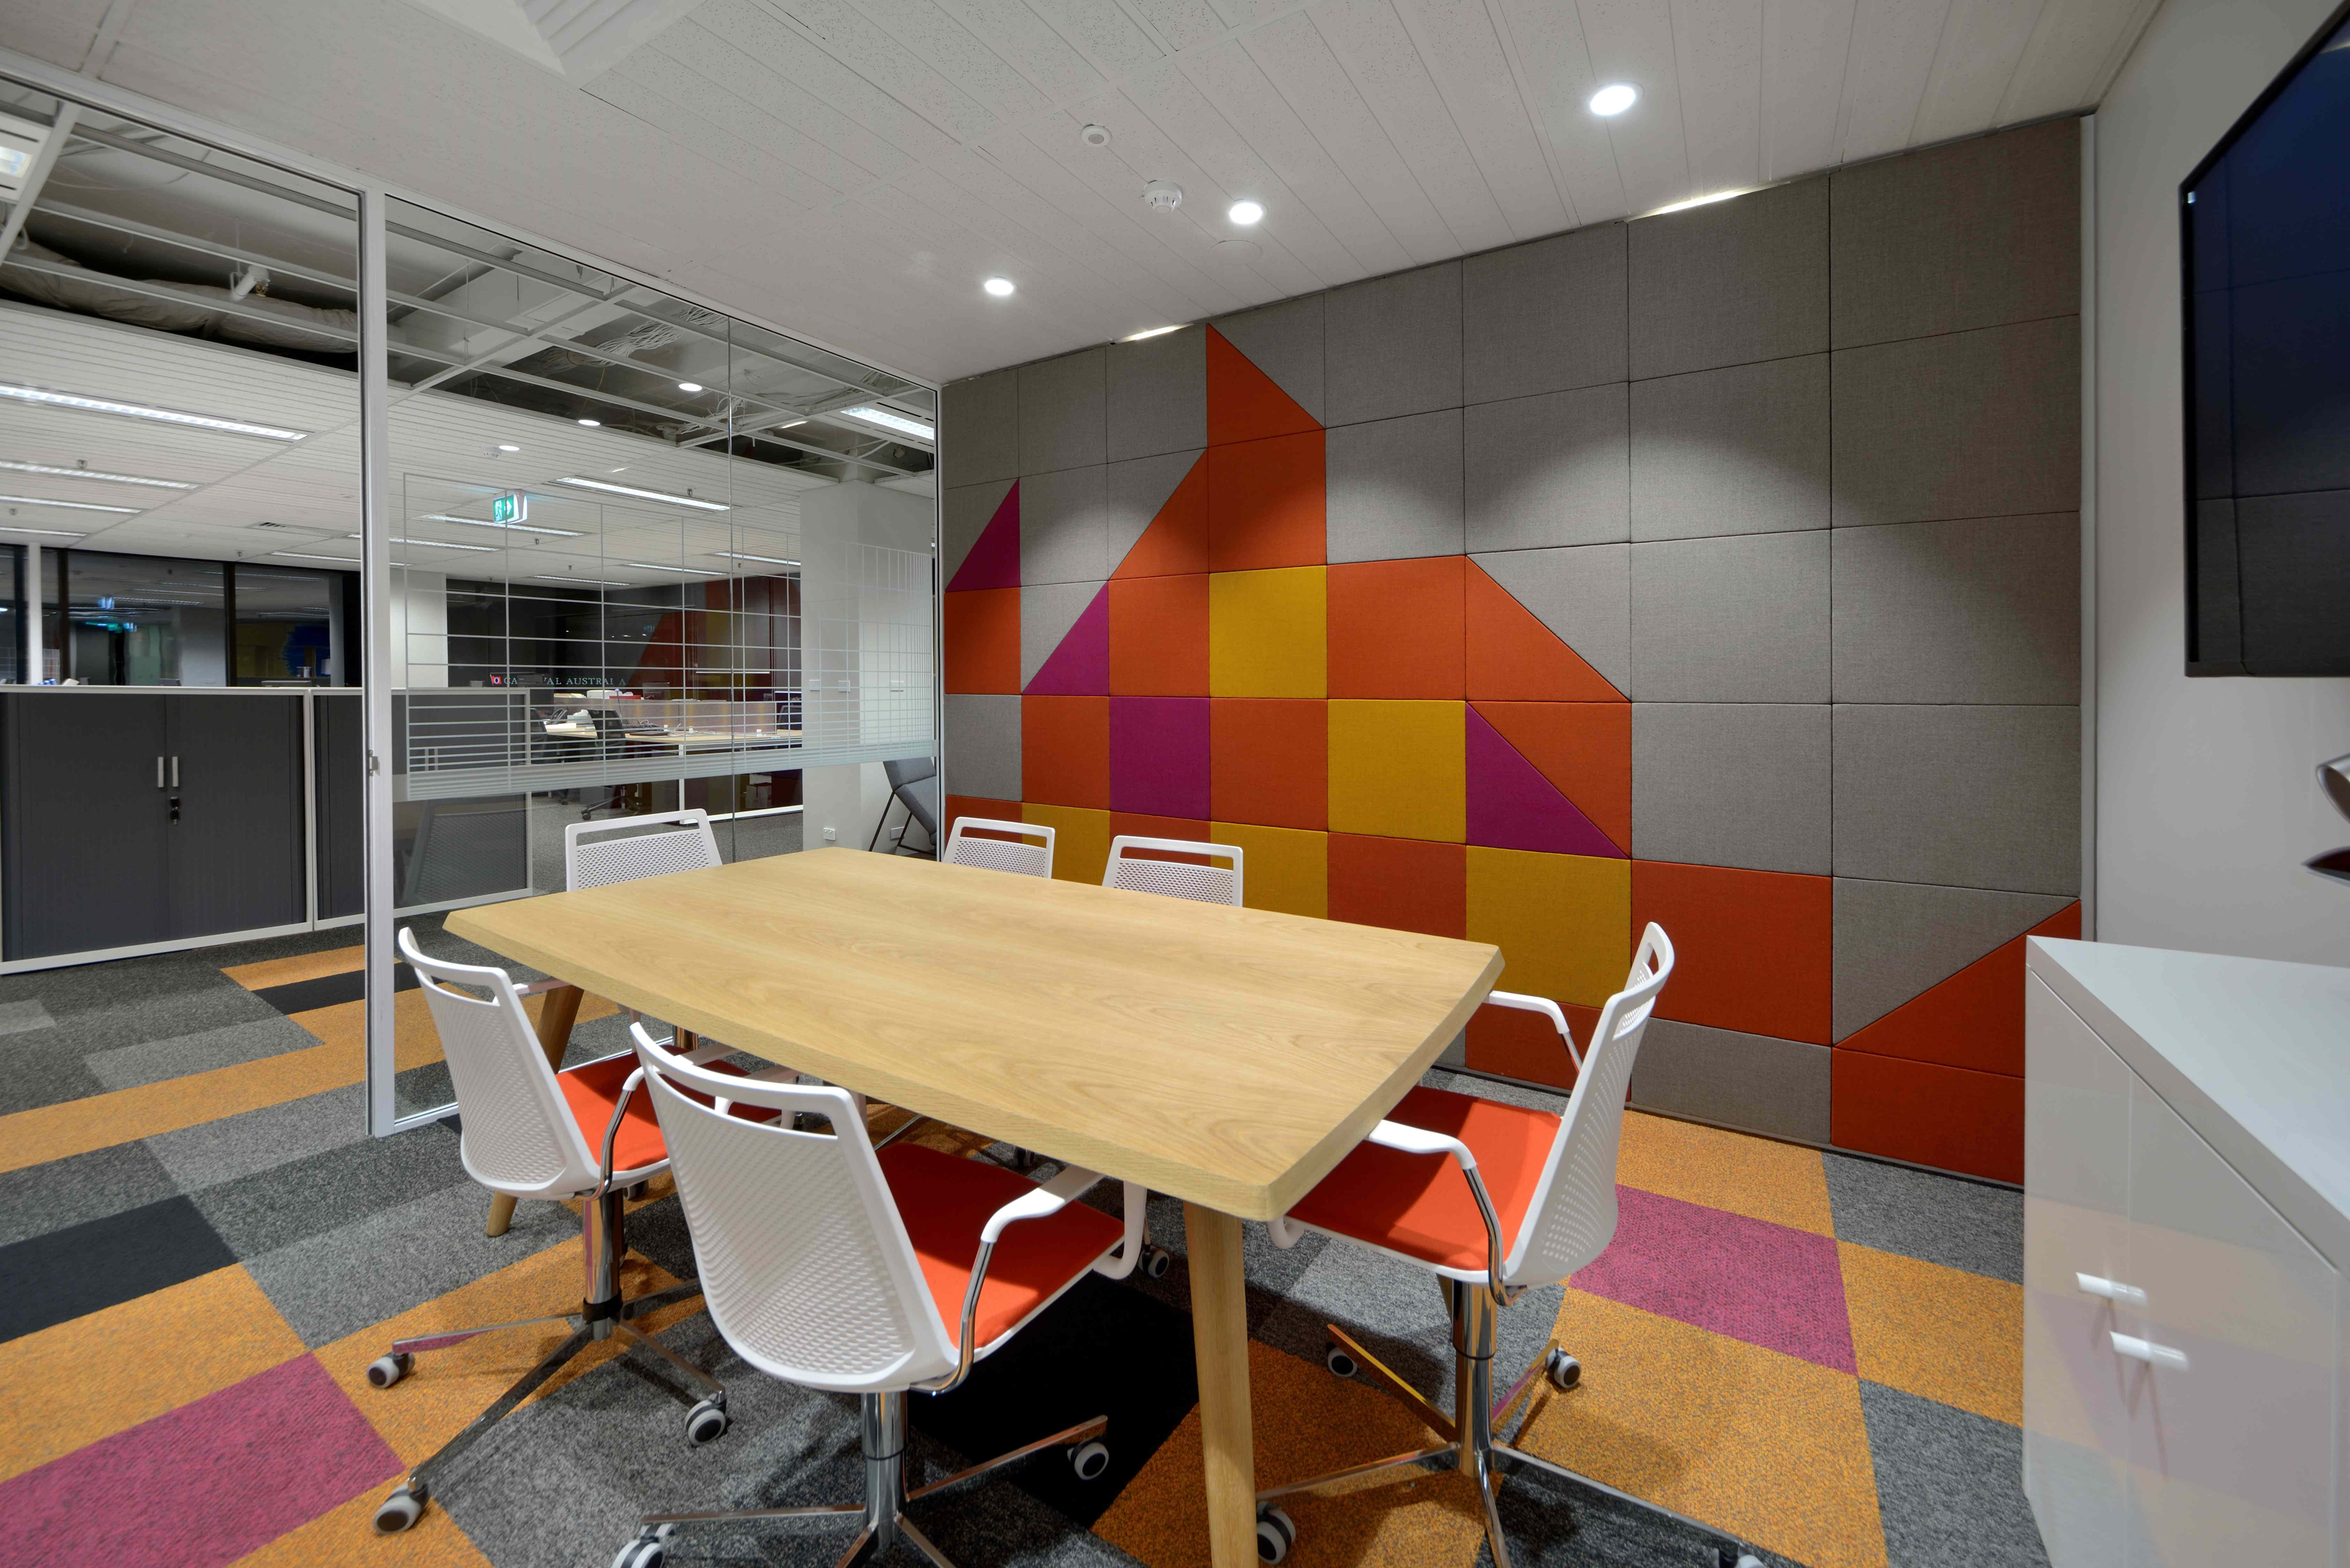 tiled kitchen floors wall shelves for financeplus, north sydney 2014 | the bold collective